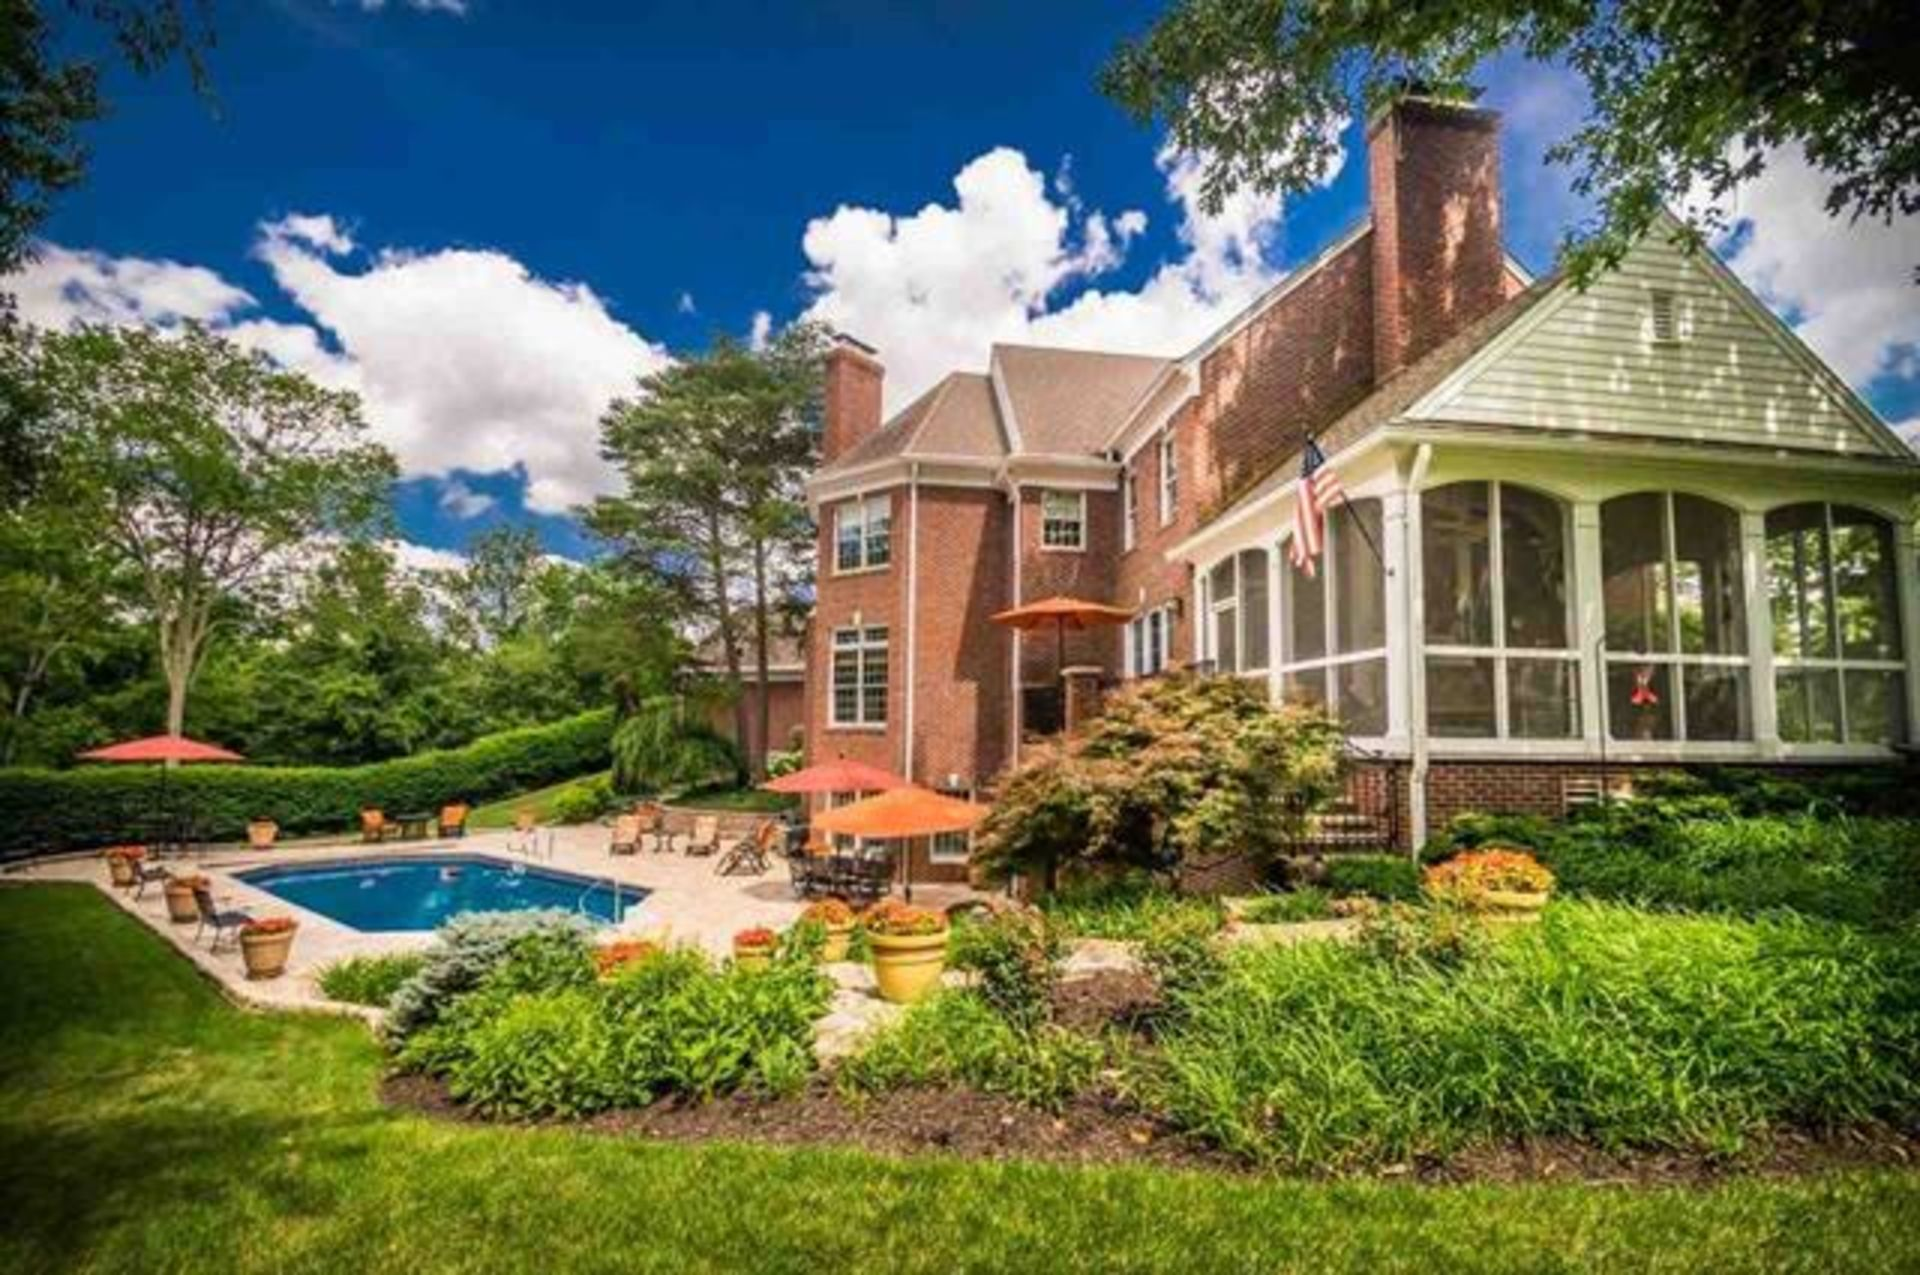 Top 10 most expensive real estate sales 2016 Evansville area